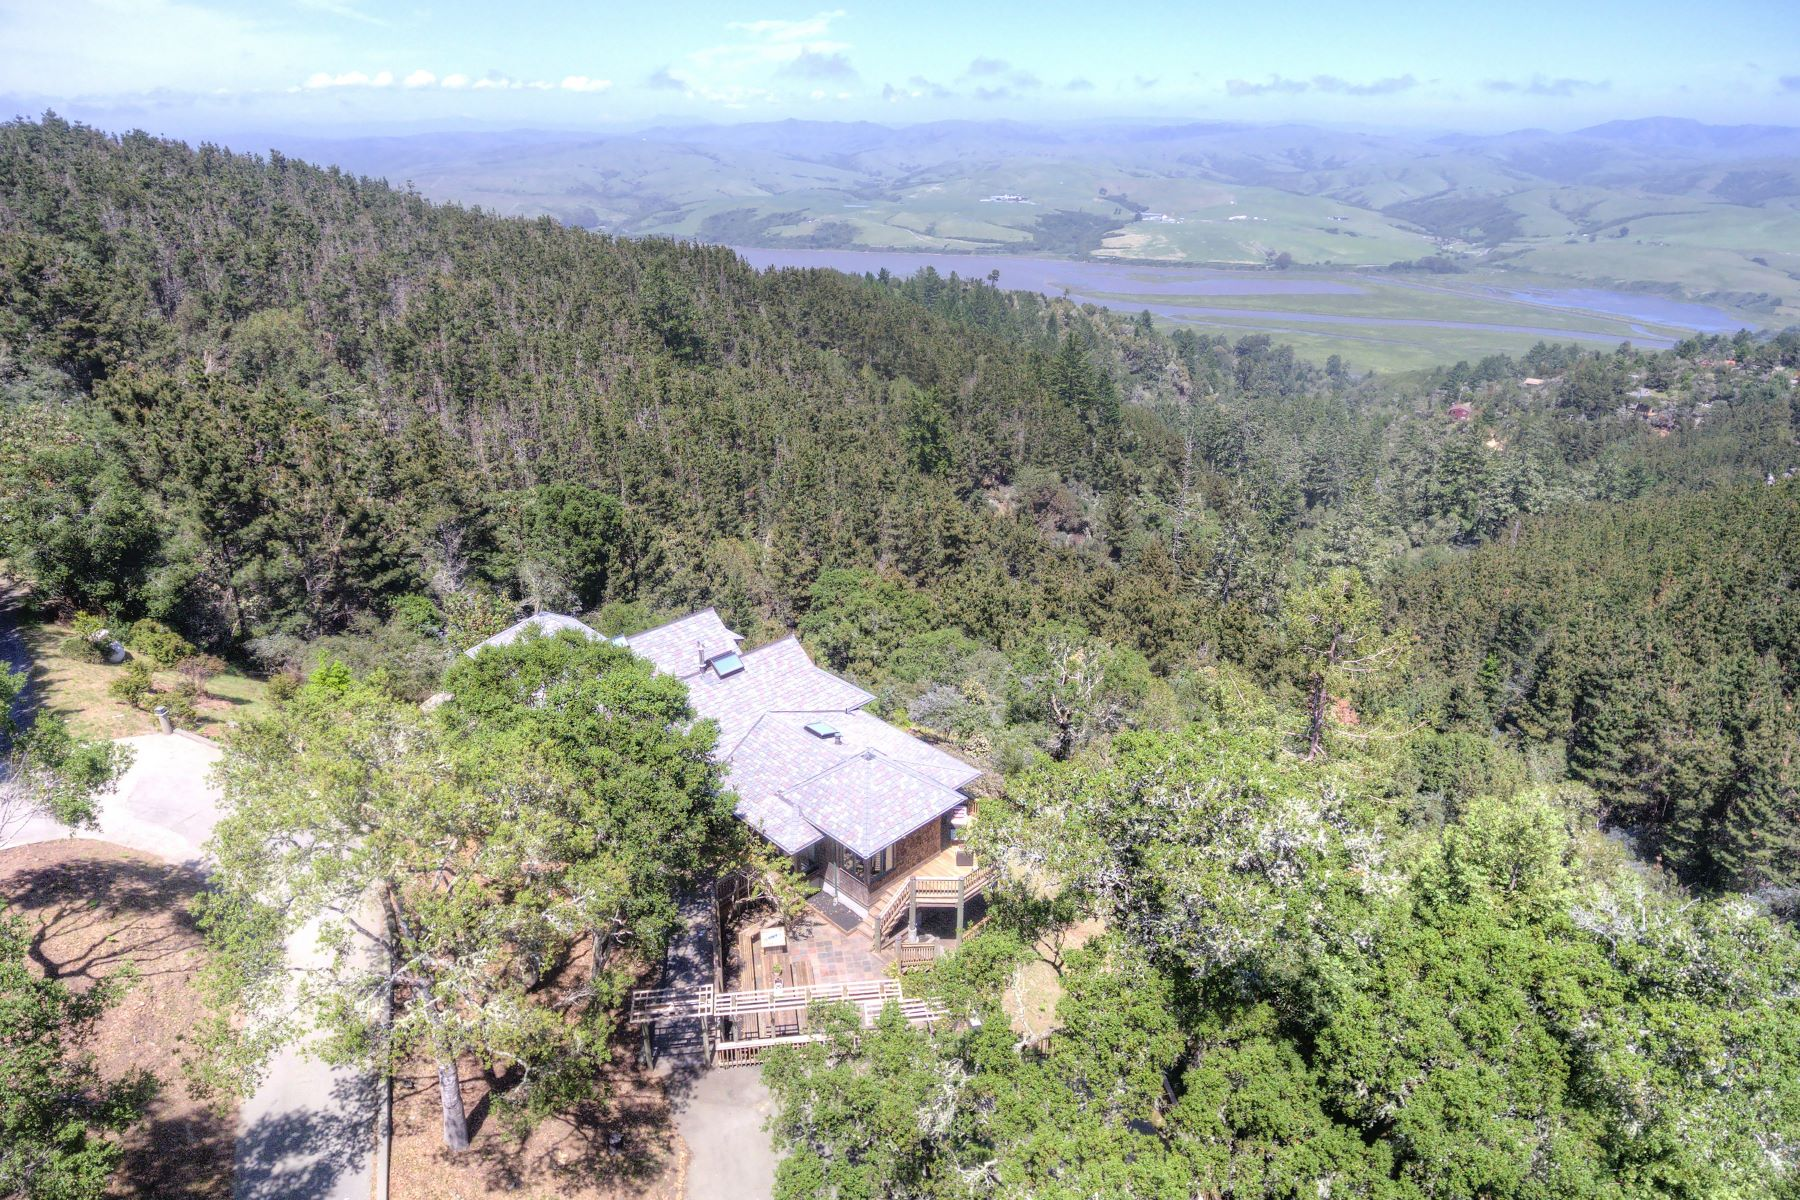 Single Family Home for Sale at The Raven's Roost 30 Buck Point Road Inverness, California 94937 United States